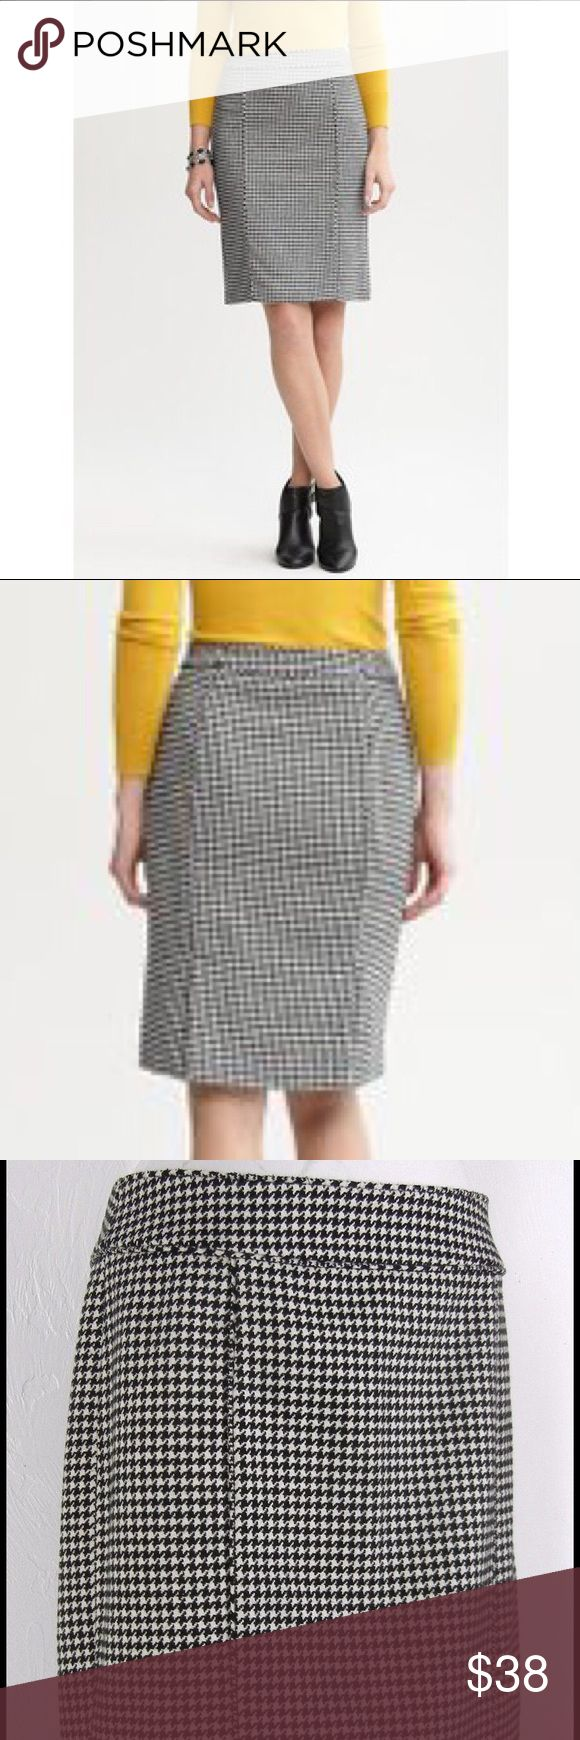 """Nwot Banana Republic houndstooth pencil skirt M Adorably classic and chic, the clean lines and crisp black & white pattern of this skirt makes the perfect canvas for color play! Mustard yellow or bright red look incredible paired with this pencil skirt as well as simple black. A wide waistband whittles your waist while double rear vents allow ease of movement. Contrast self piping down the front/back seams. Approx 23 1/4"""" long. New without tags, never worn before baby happened! Fully lined…"""